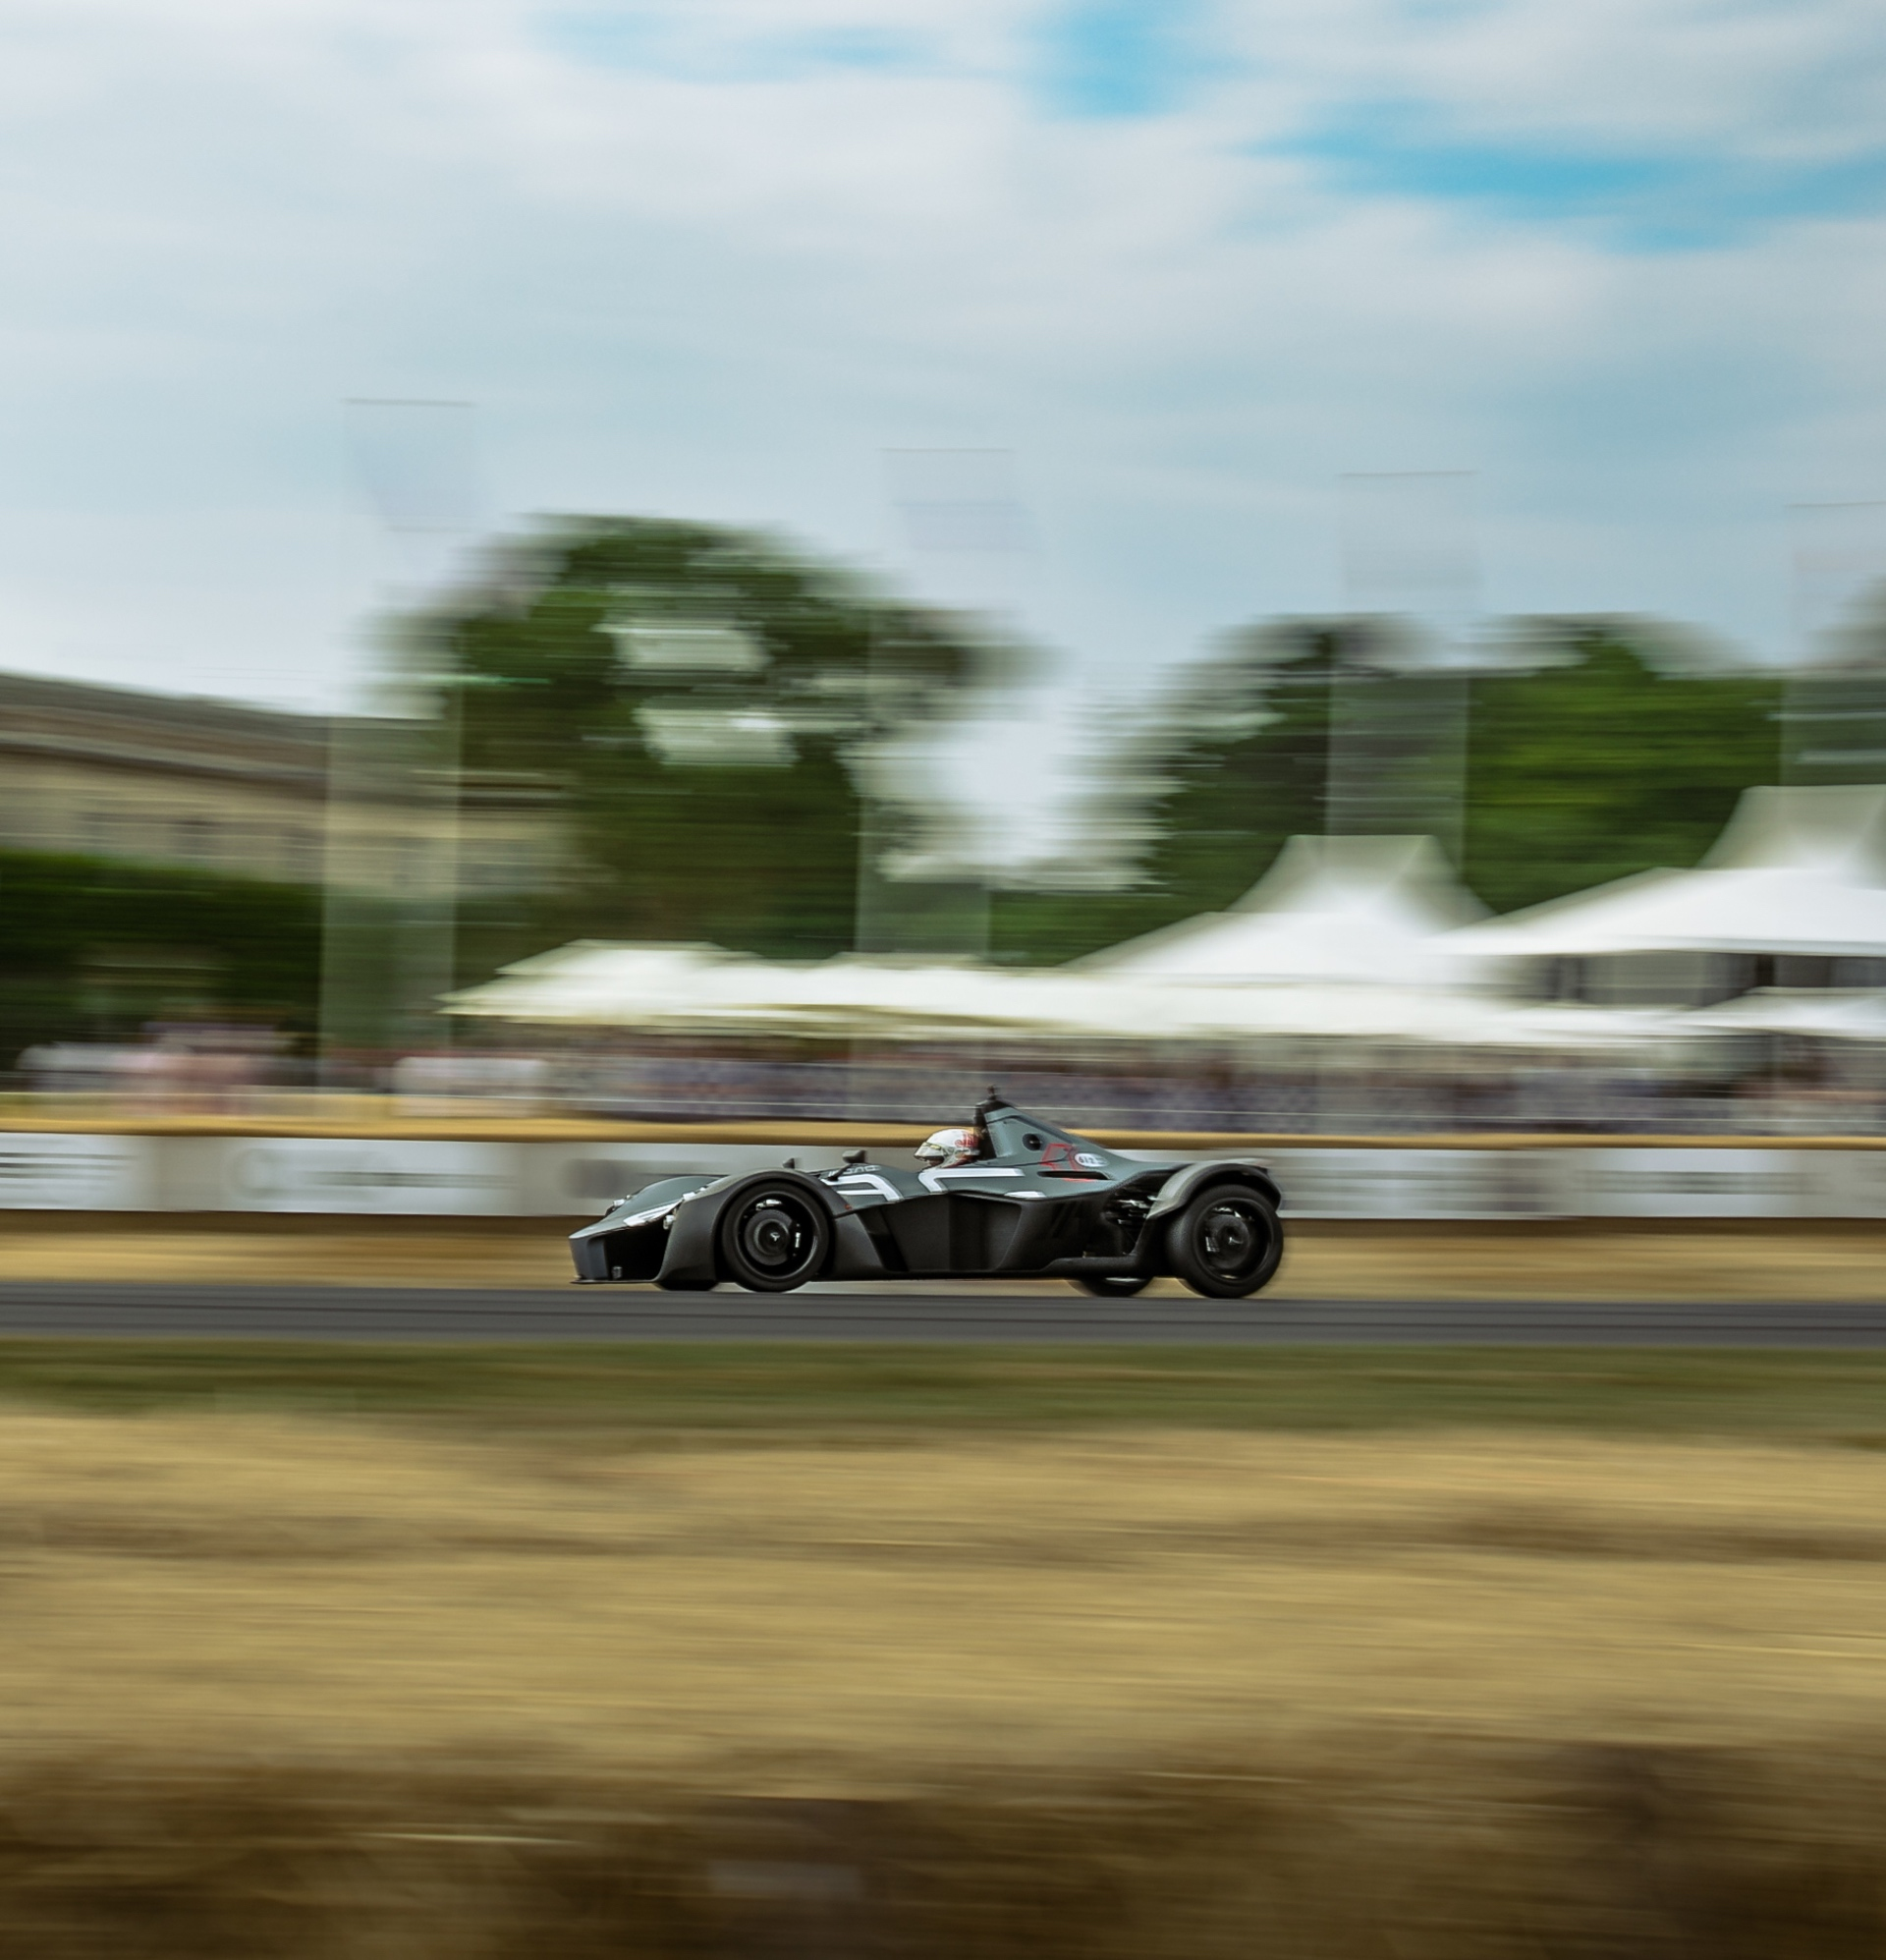 BAC_Mono_Goodwood_Hillclimb_Record_0004